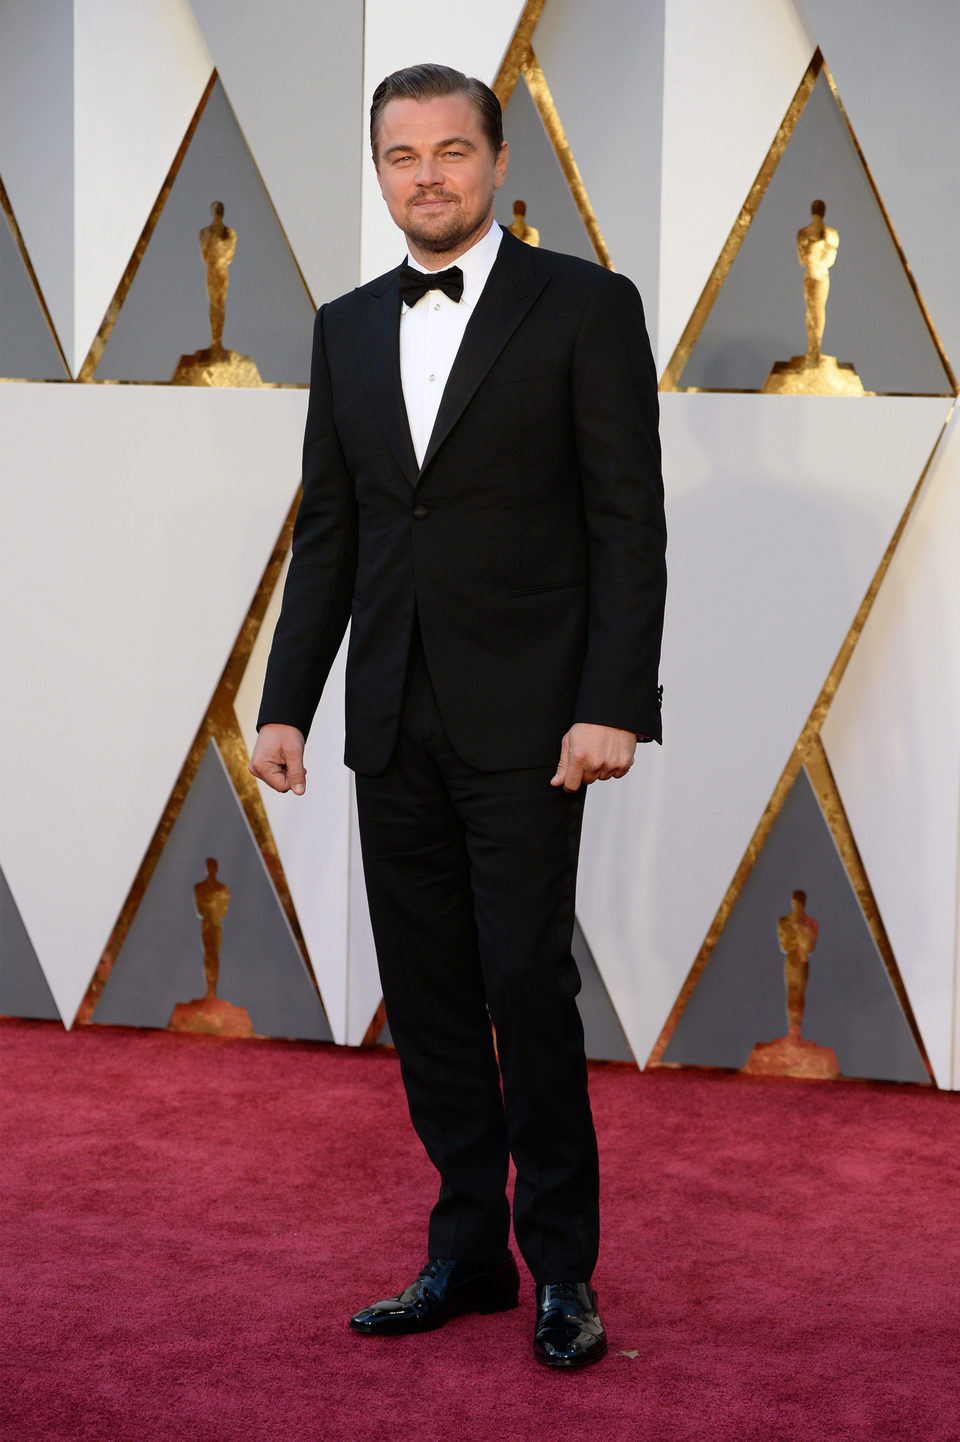 Leonardo DiCaprio at the Oscars 2016 red carpet